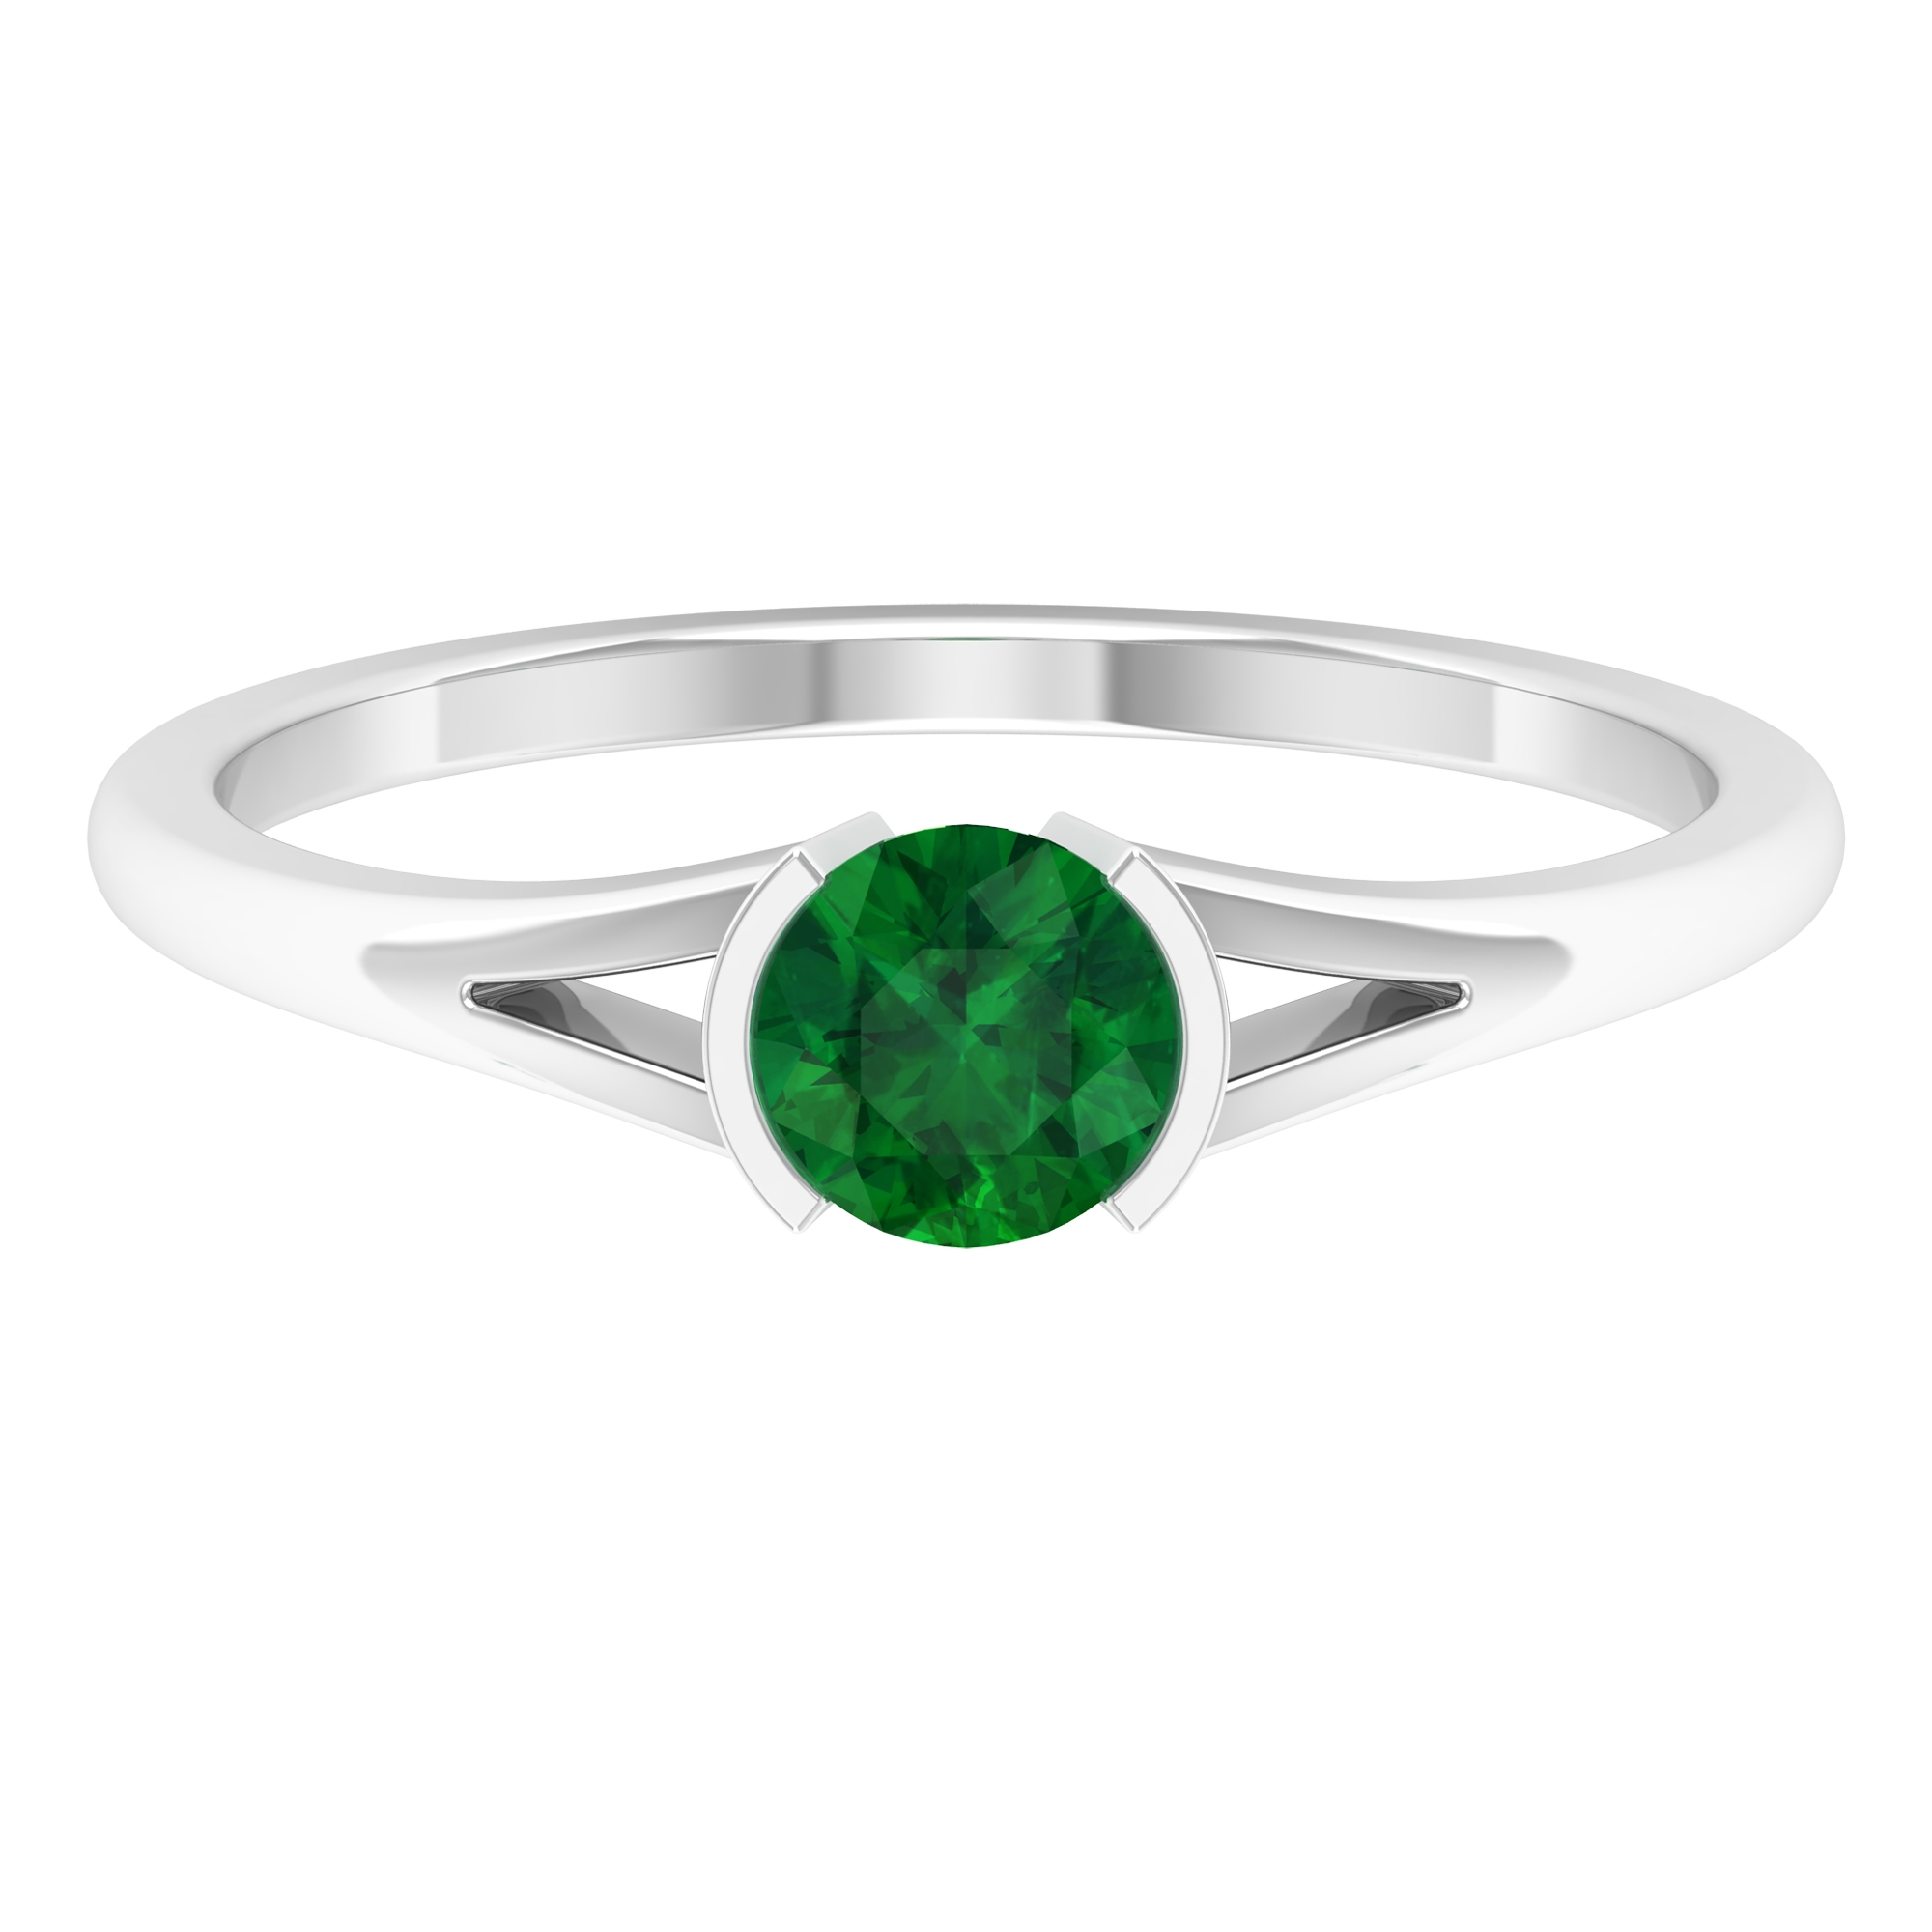 5 MM Round Cut Emerald Solitaire Ring in Half Bezel Setting with Split Shank